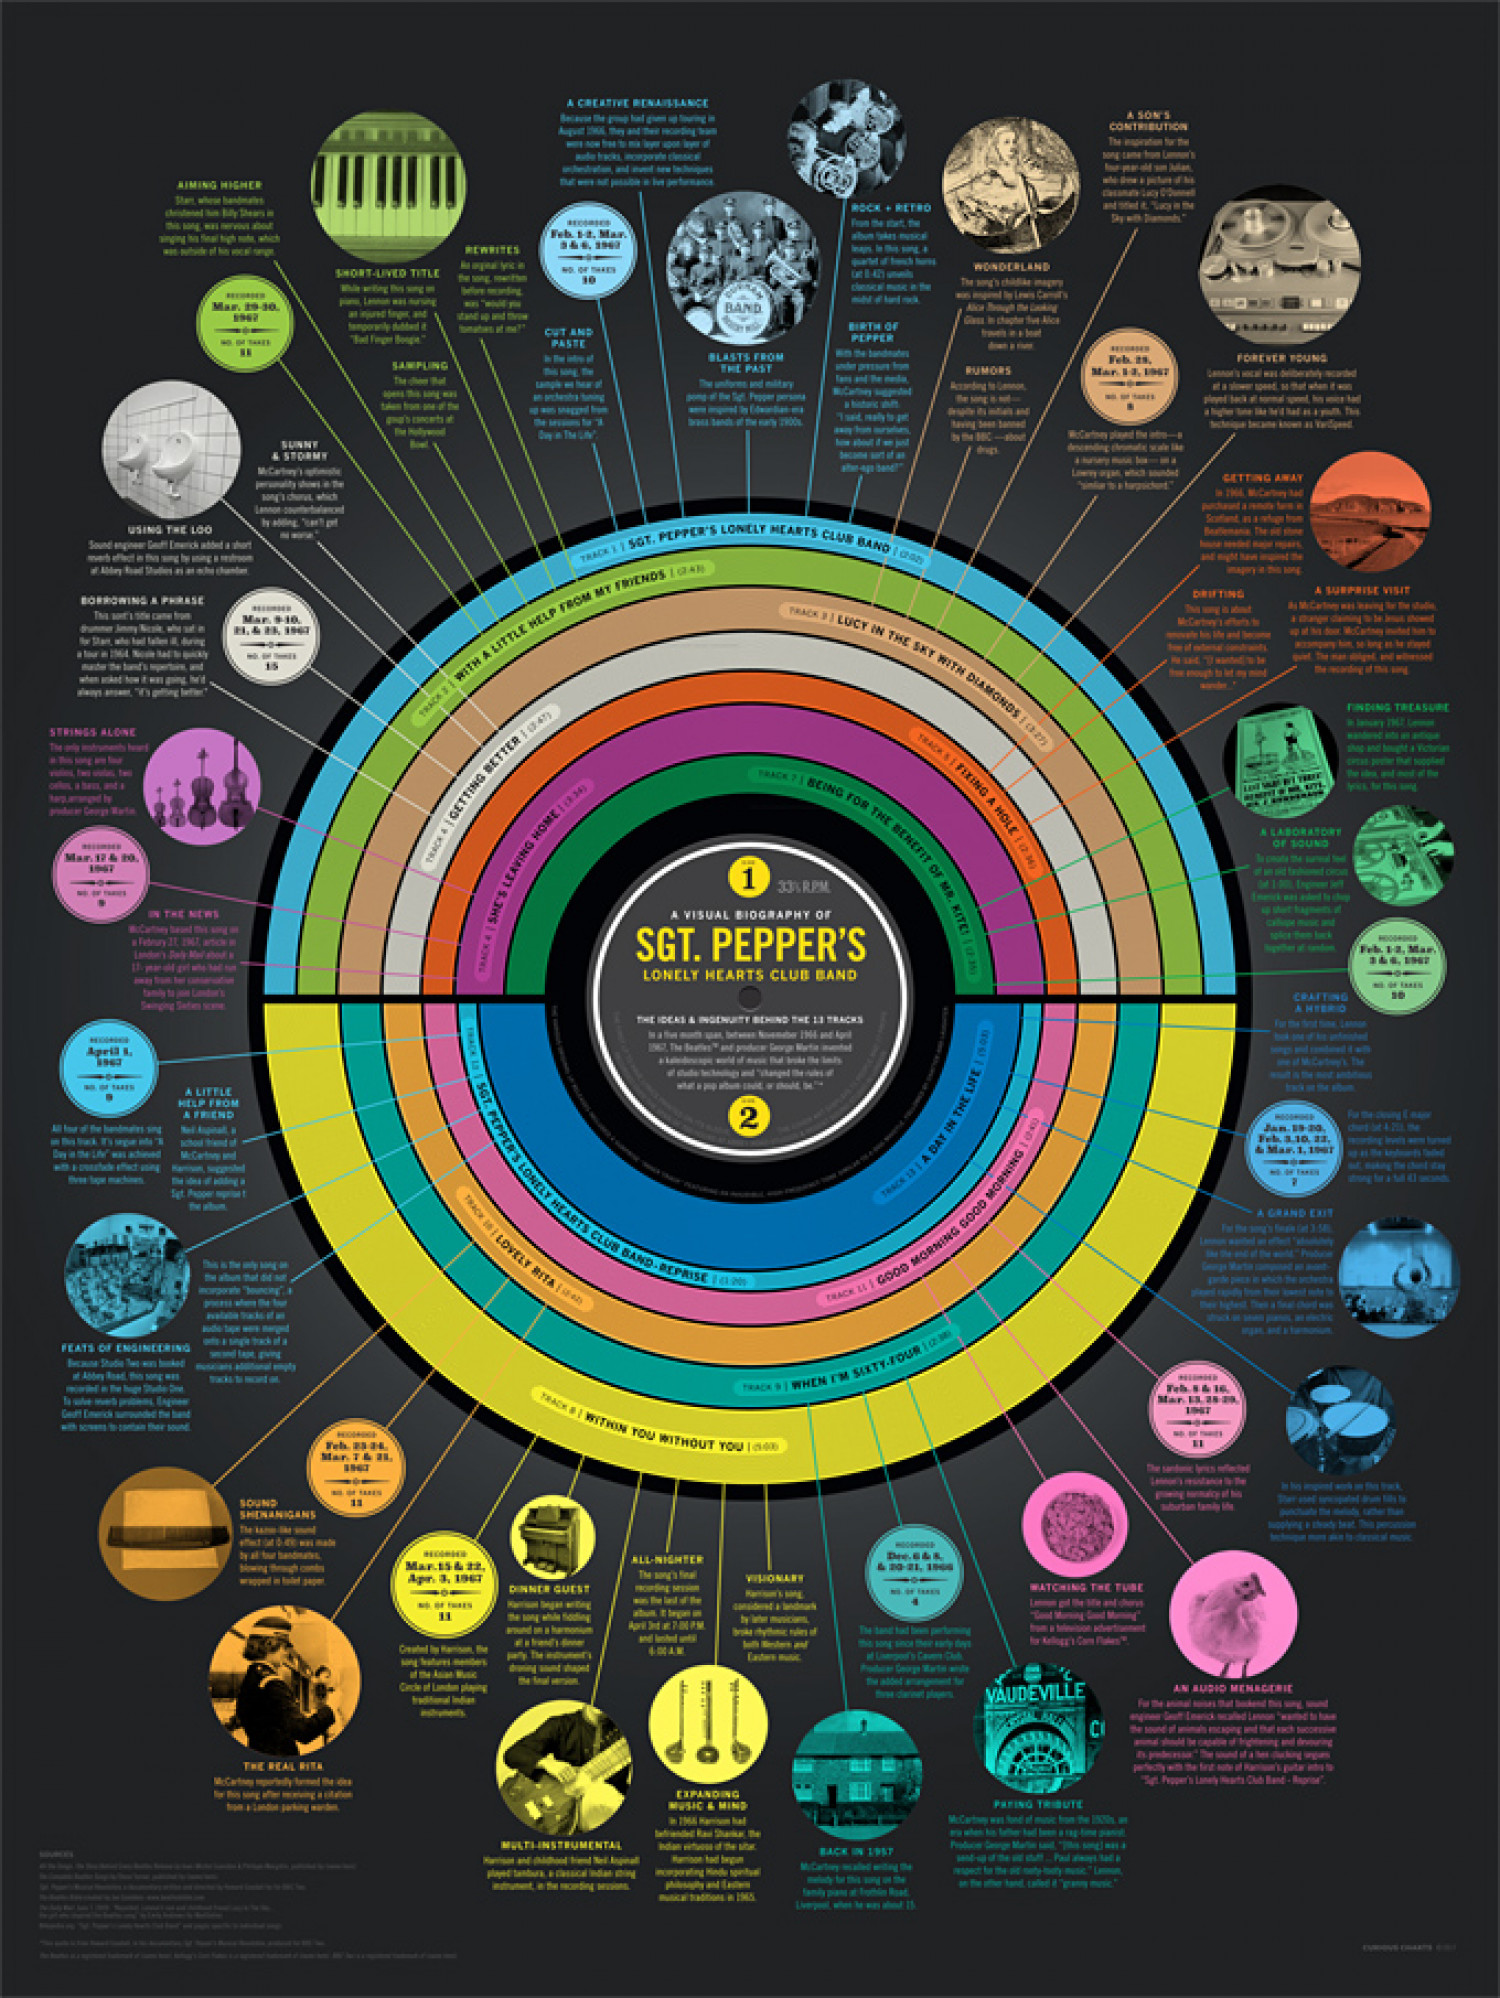 Sgt. Peppet: A Chart of the Magic Behind the Album Infographic